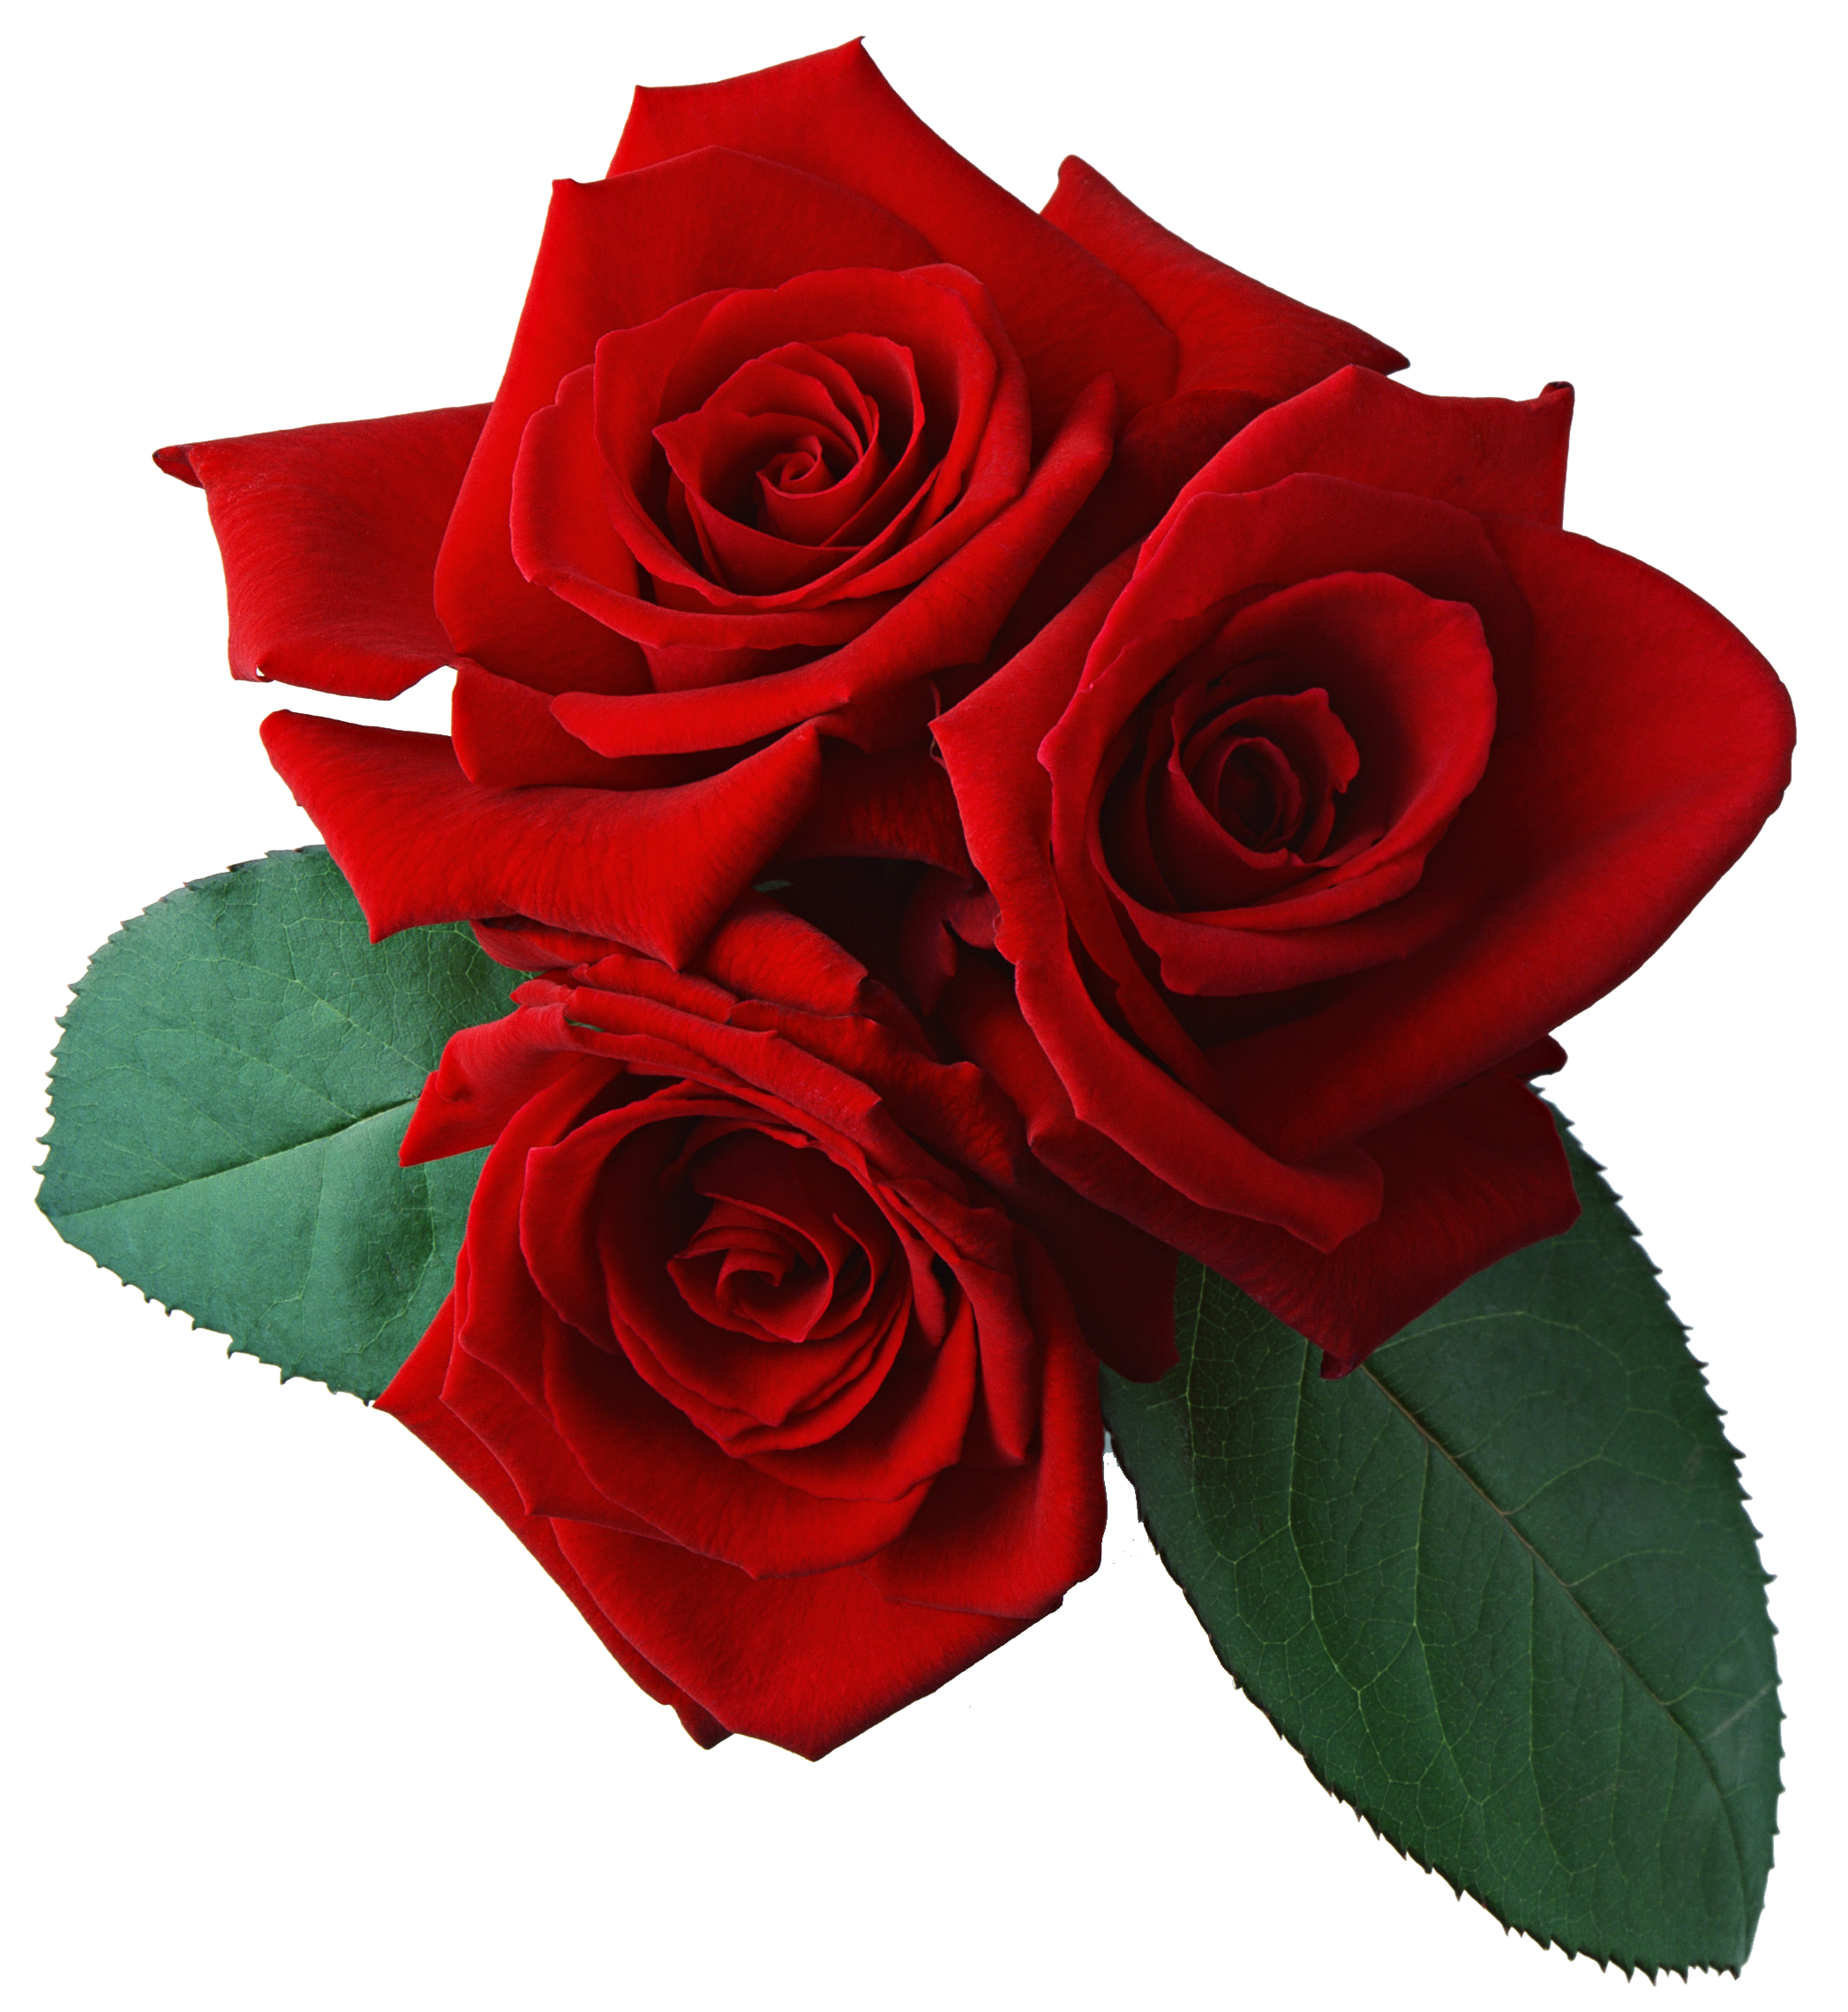 Red Rose Transparent Background - Rose HD PNG